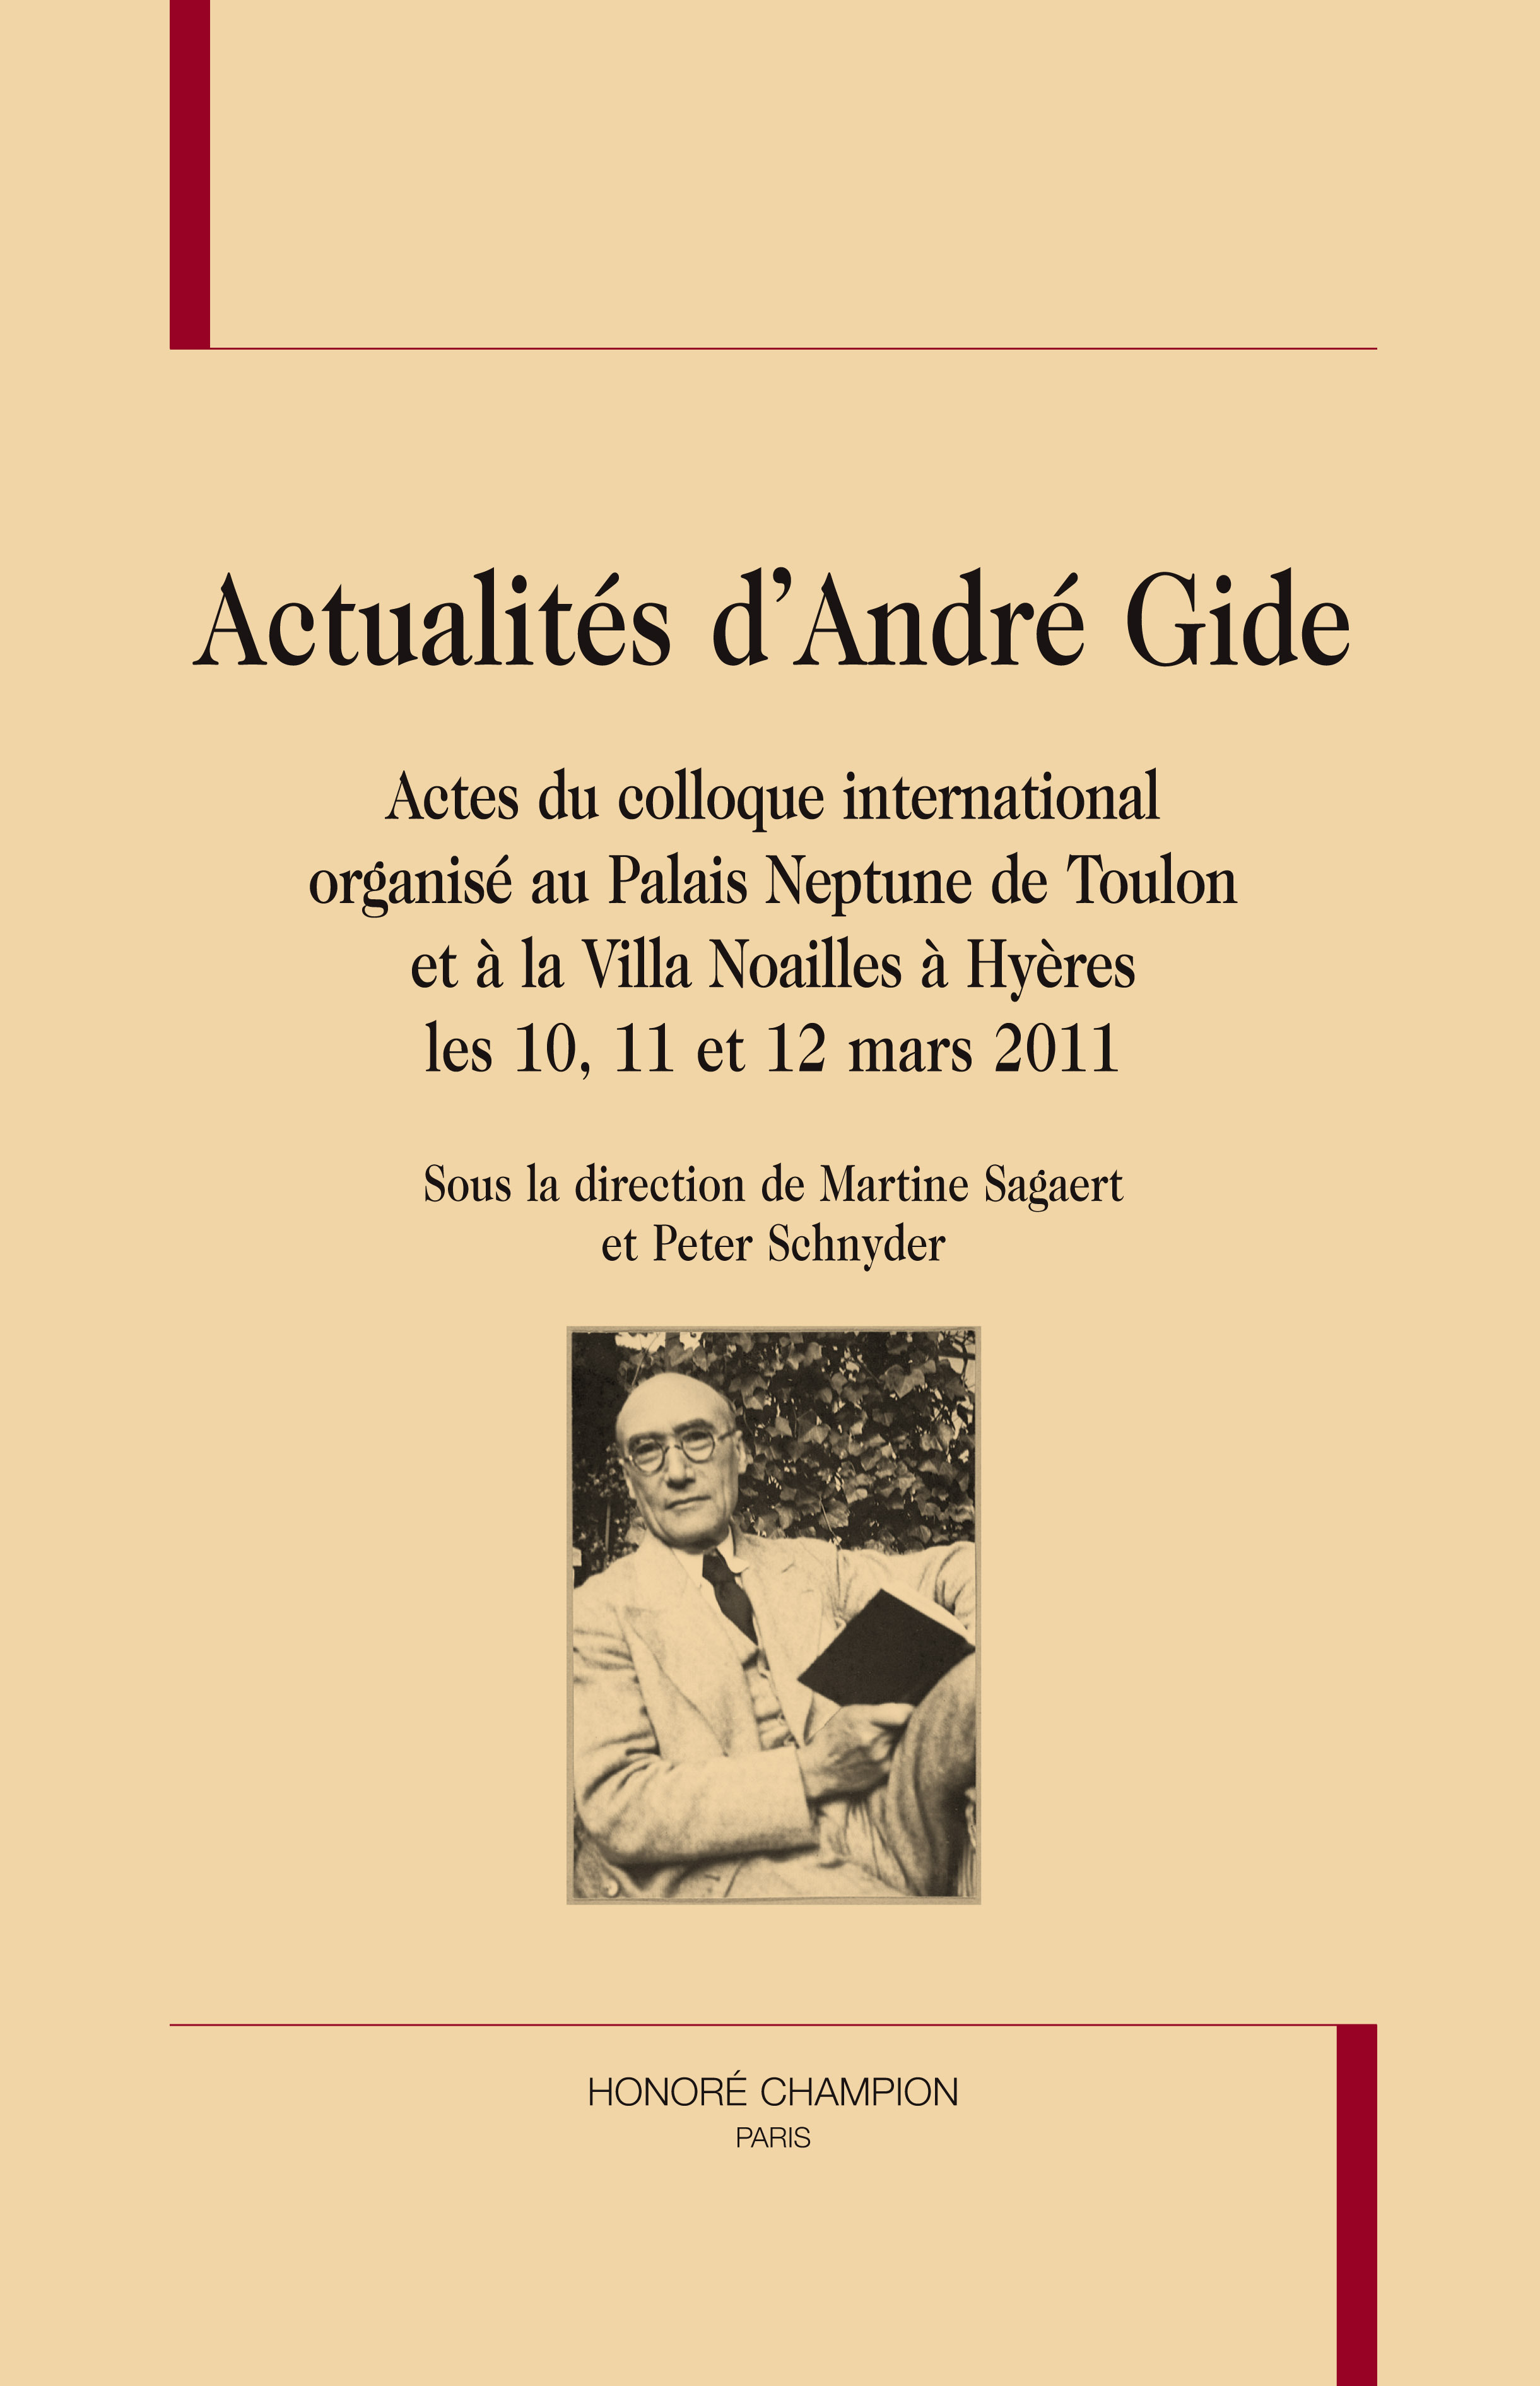 ACTUALITES D'ANDRE GIDE